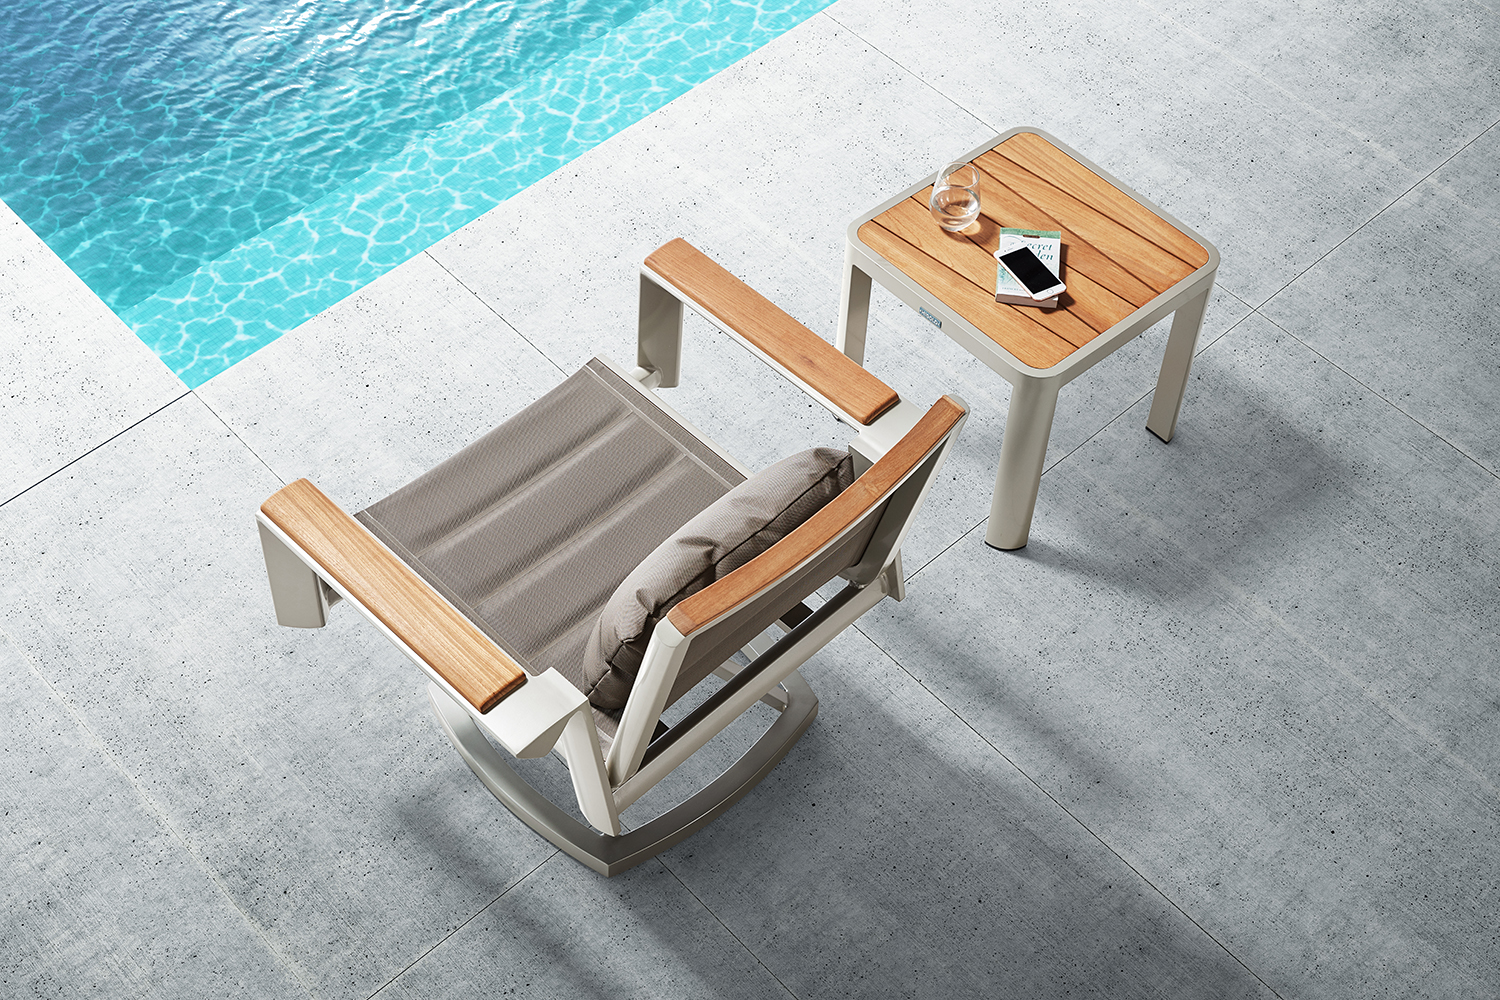 Geneva contemporary swivel rocker lounge chair and teak top side table are perfect for any small area. Padded fabric provides comfort yet is quick drying.